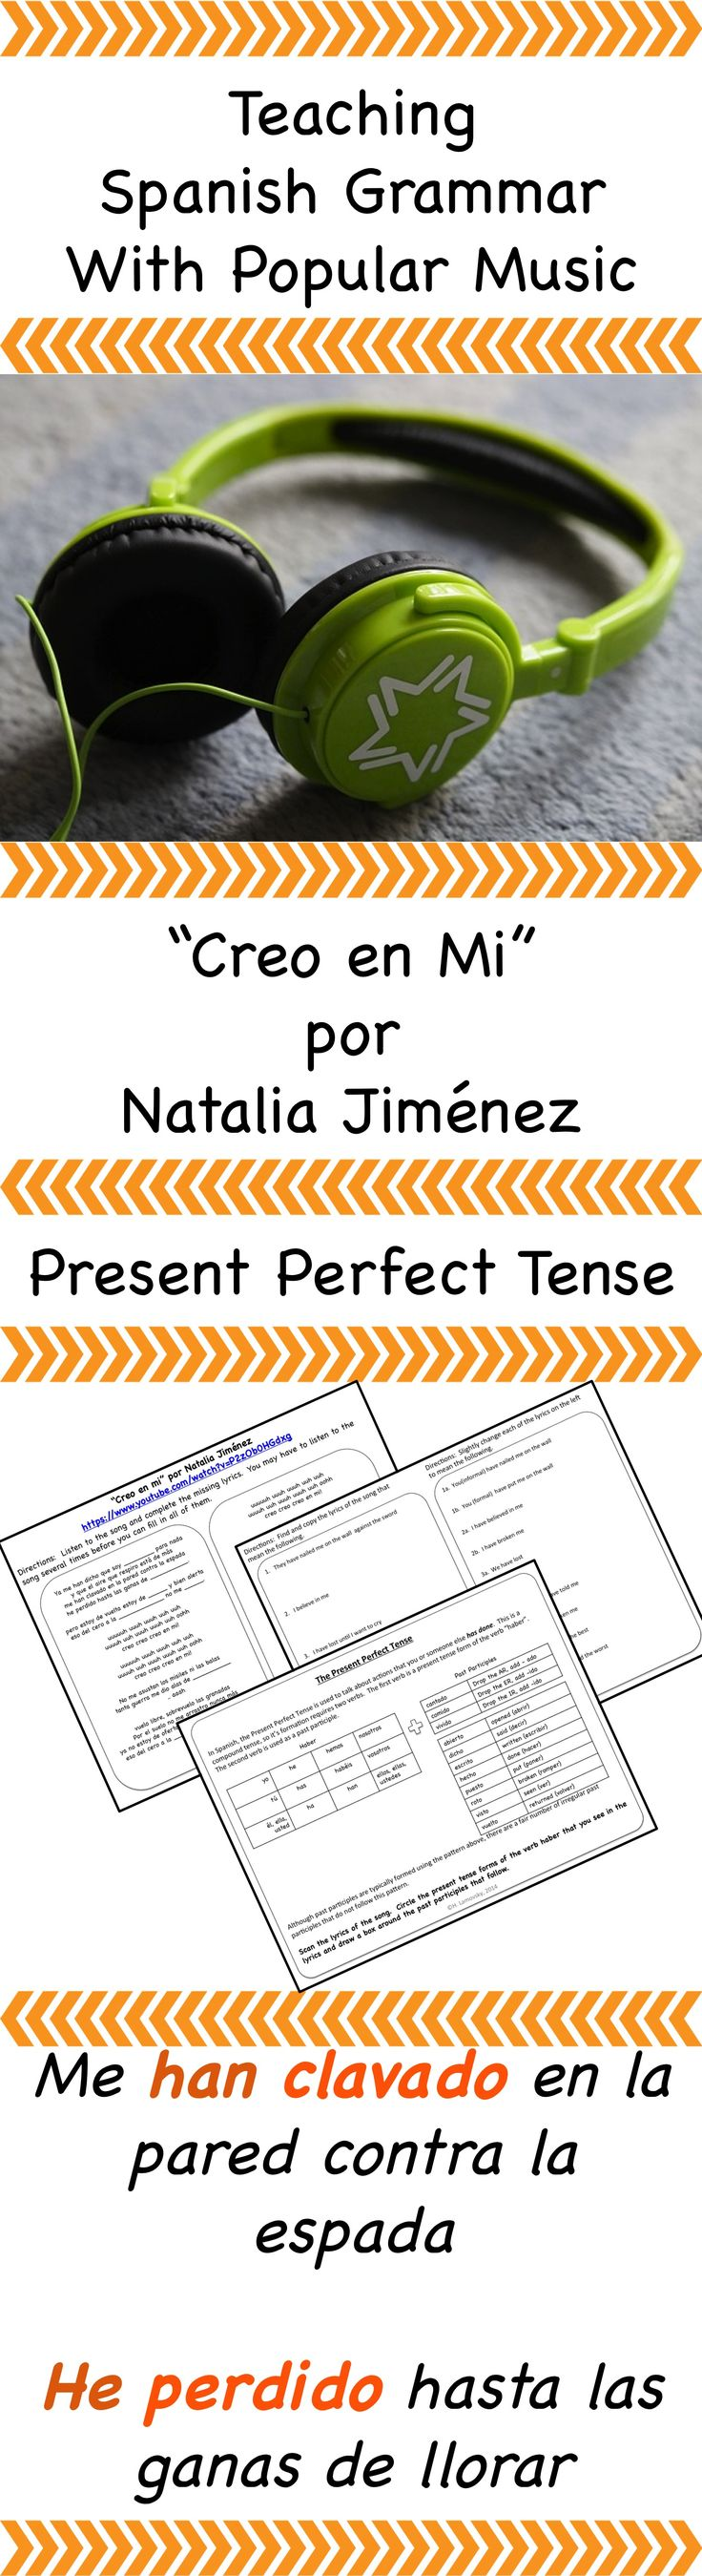 Spanish present perfect tense song and activities